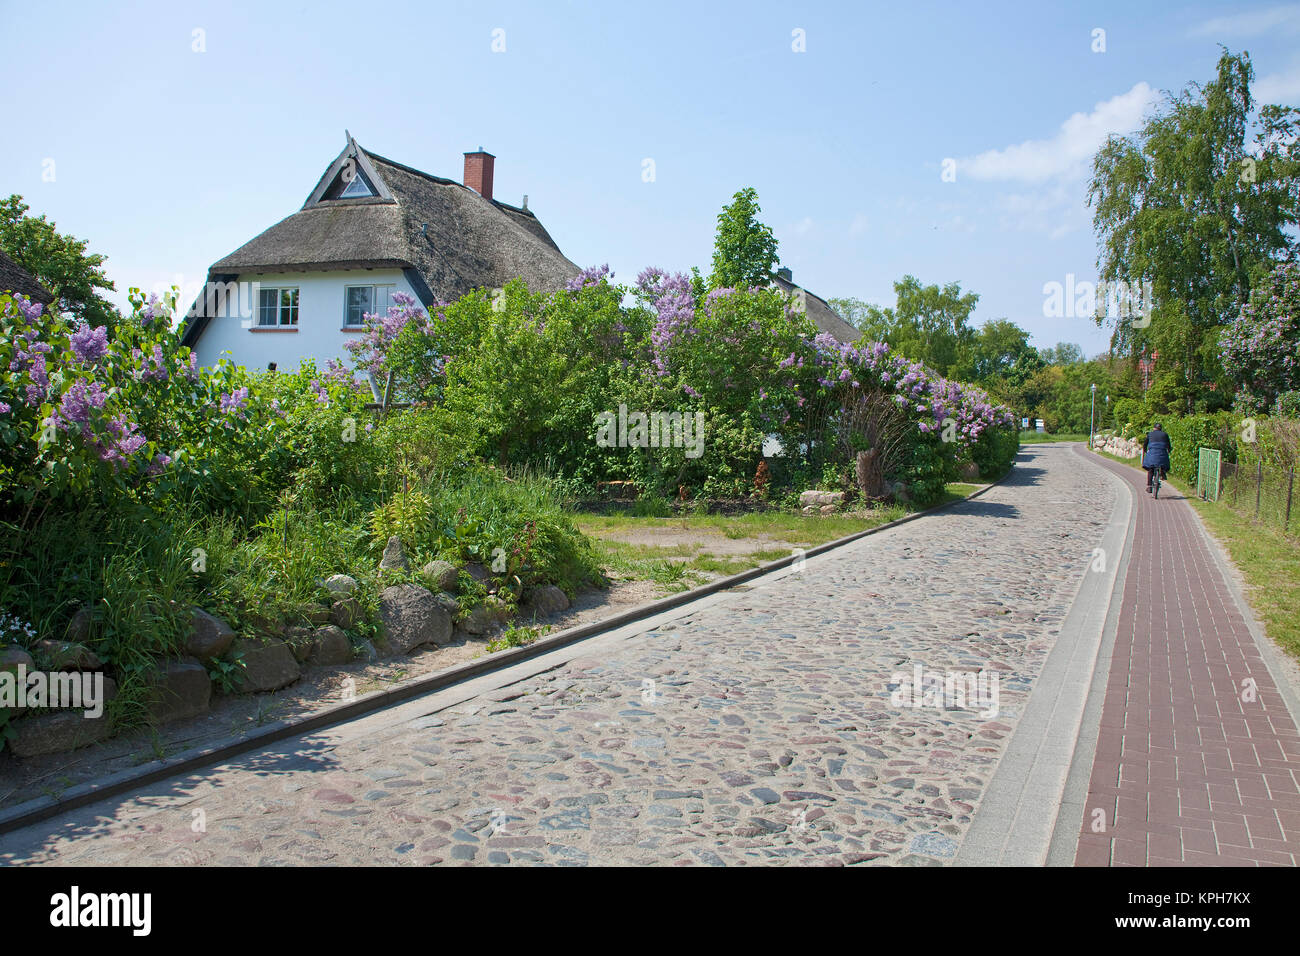 Thatched-roof house at the main street of Gross Zicker, Ruegen island, Mecklenburg-Western Pomerania, Baltic Sea, - Stock Image